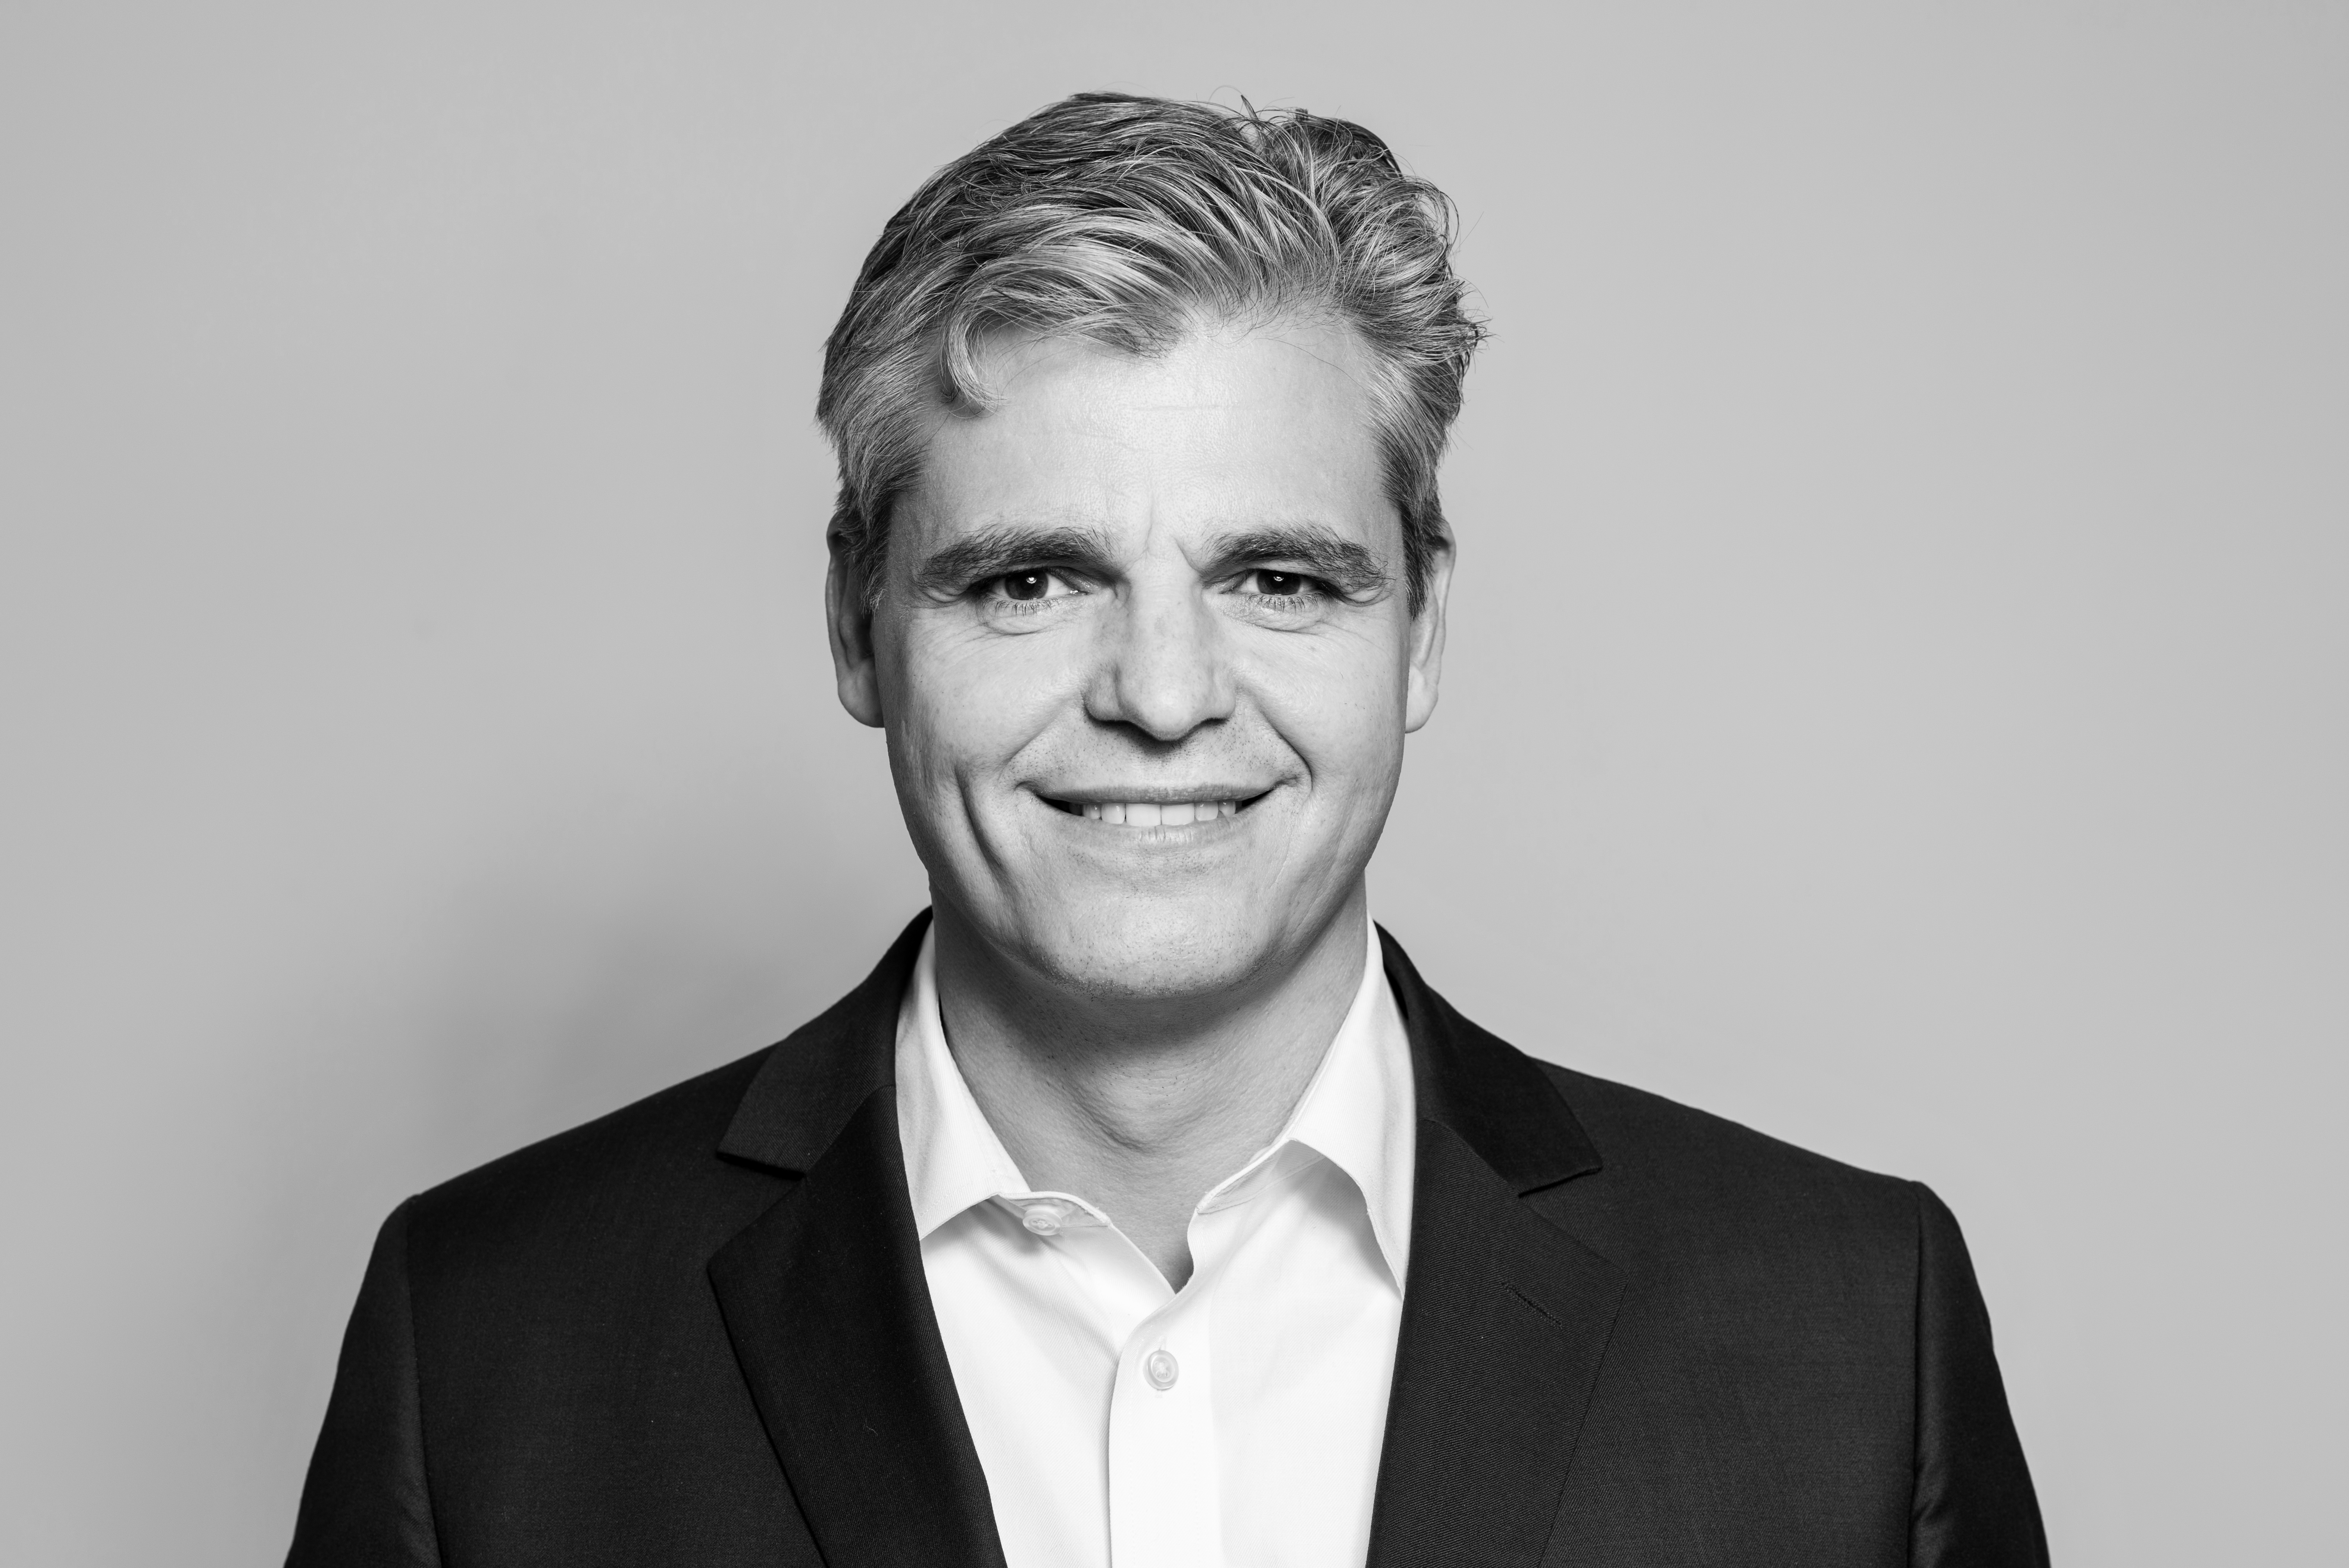 Lars Härle wird Partner bei Corporate Venture Capital-Verwalter